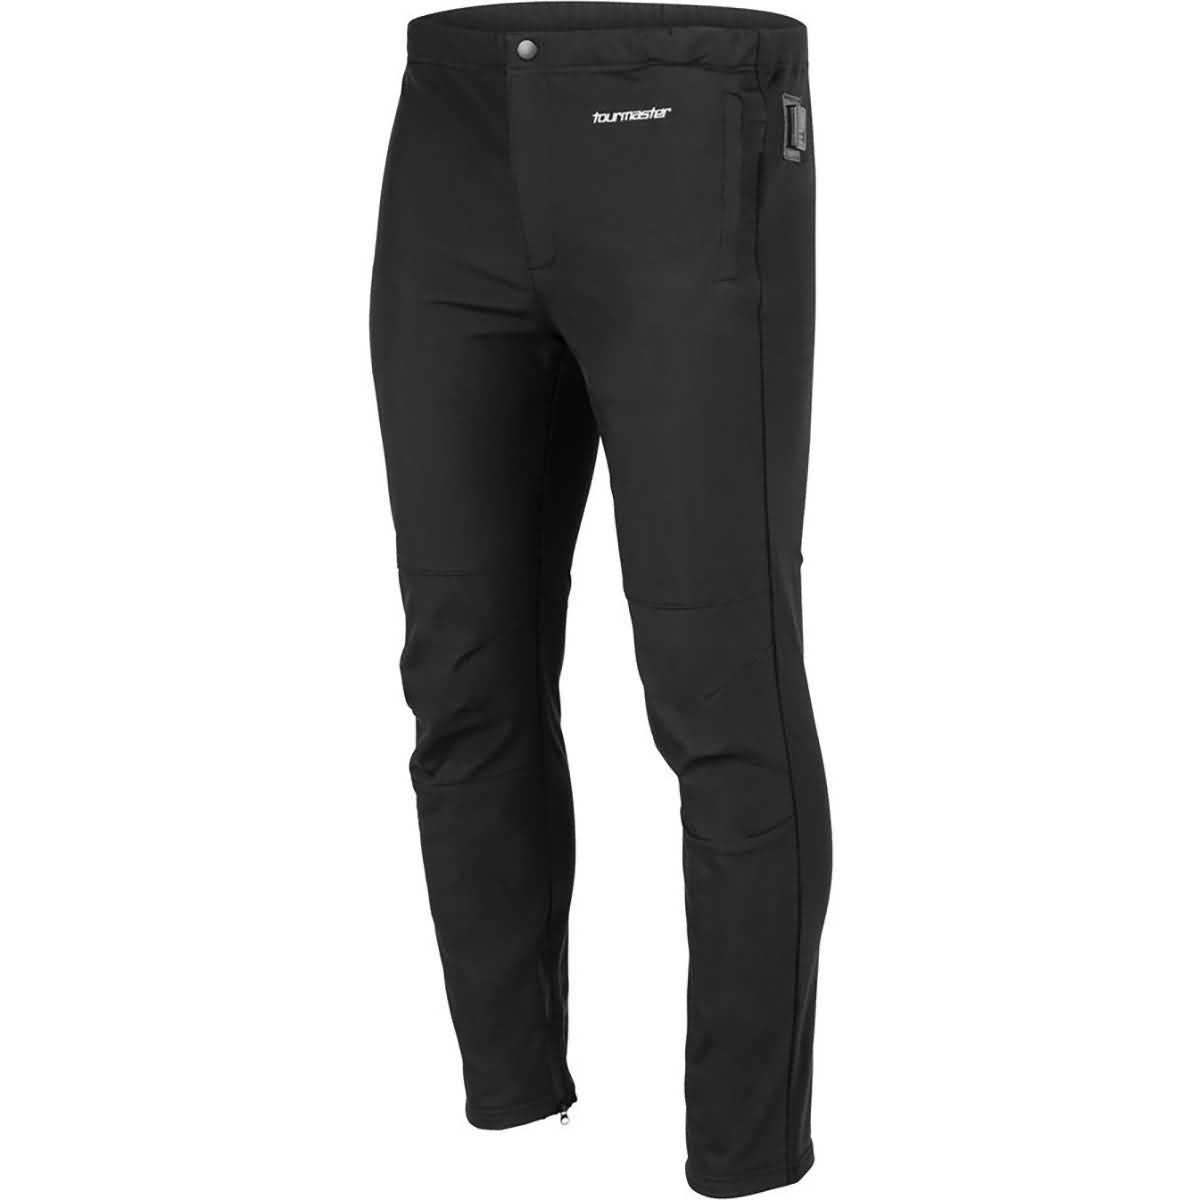 Tour Master Synergy Pro-Plus 12V Heated Men's Snow Pants-8763